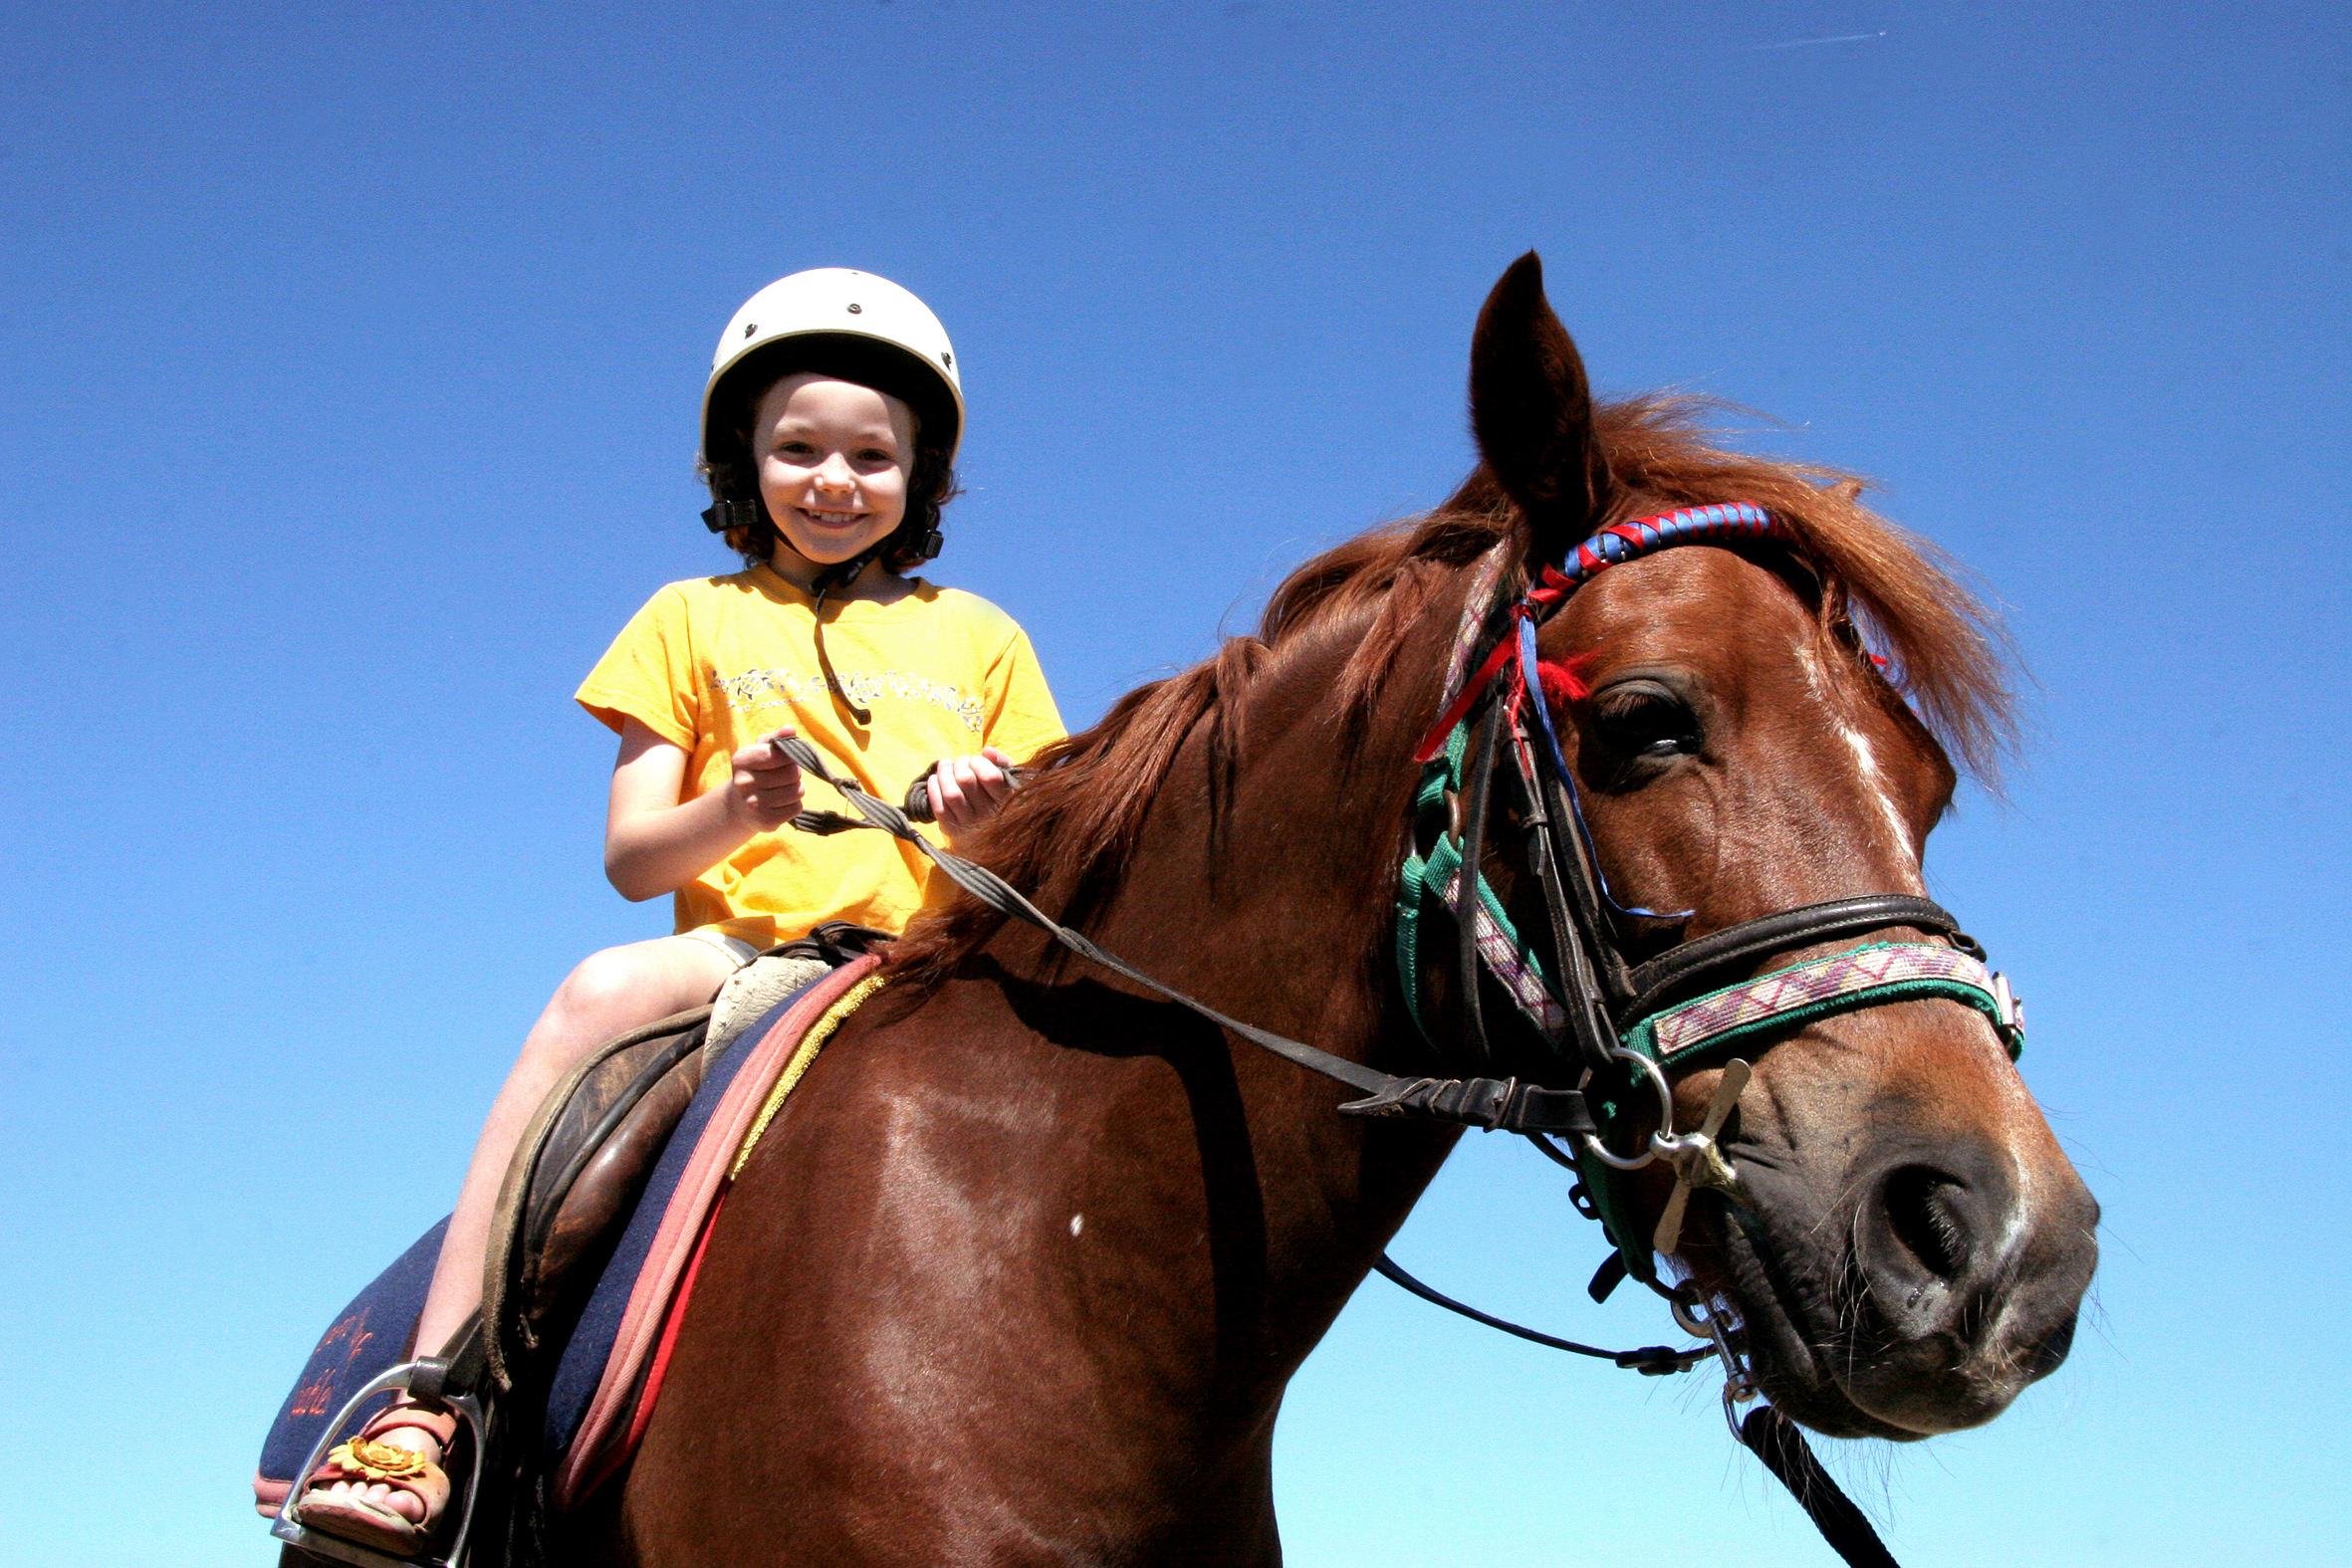 Pony Ride for Children at Domaine de l'Etoile